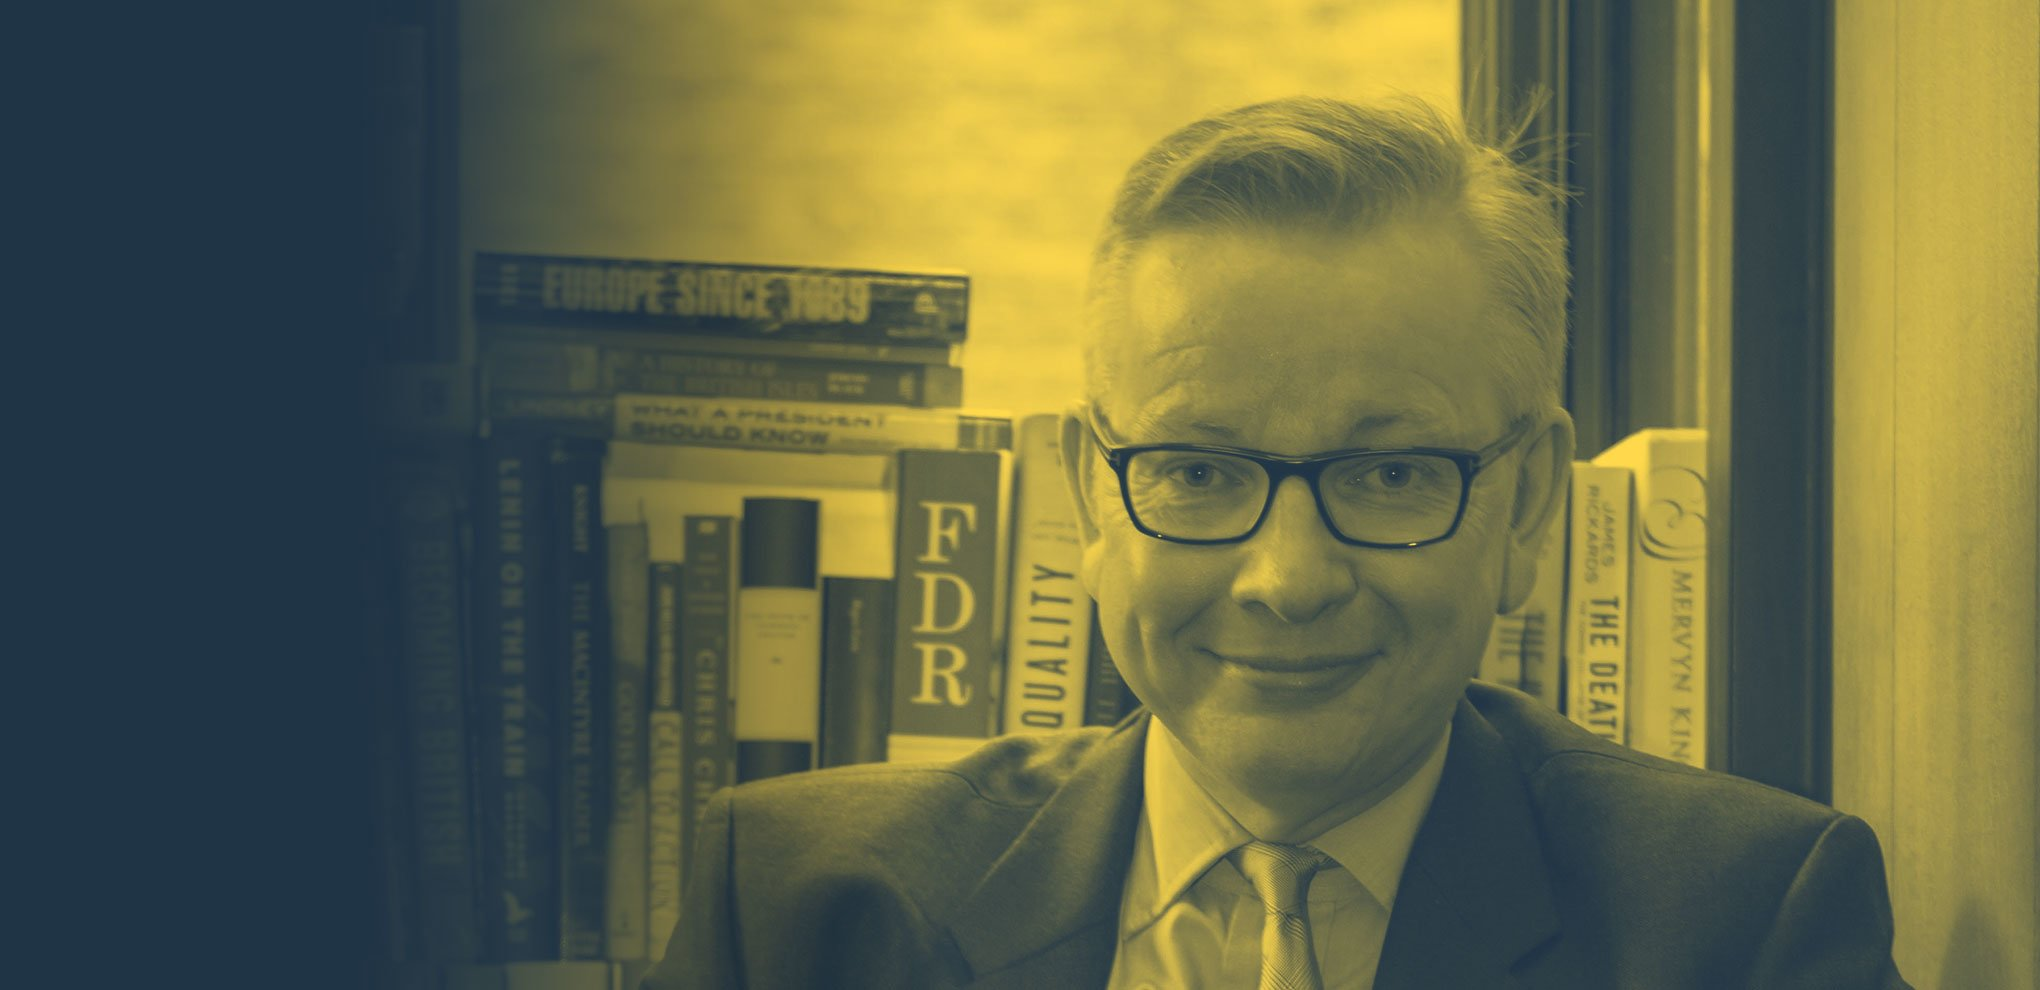 Michael Gove MP gave the 2018 Annual Lecture on 'A Harvest for the World: Environmental justice, stewardship and the moral purpose of government.'